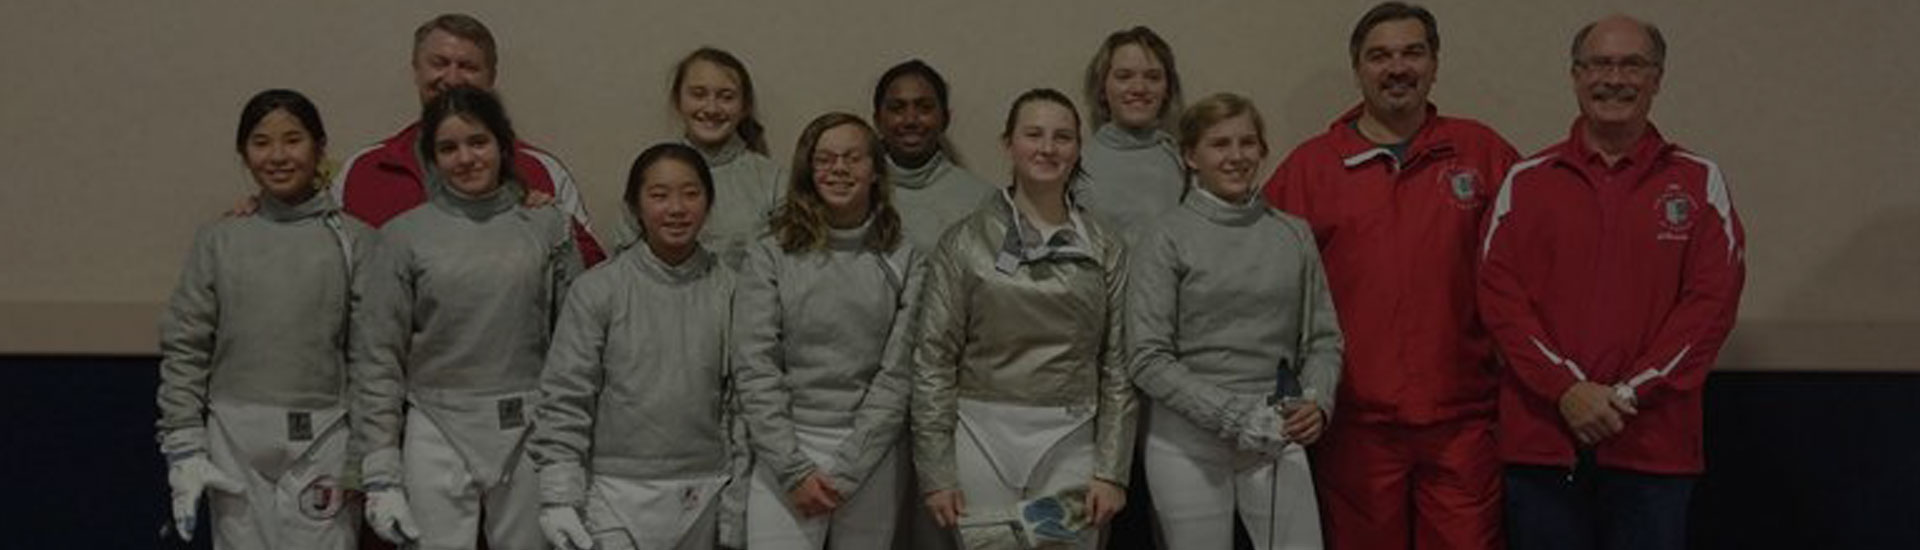 Fencing is a great team sport!